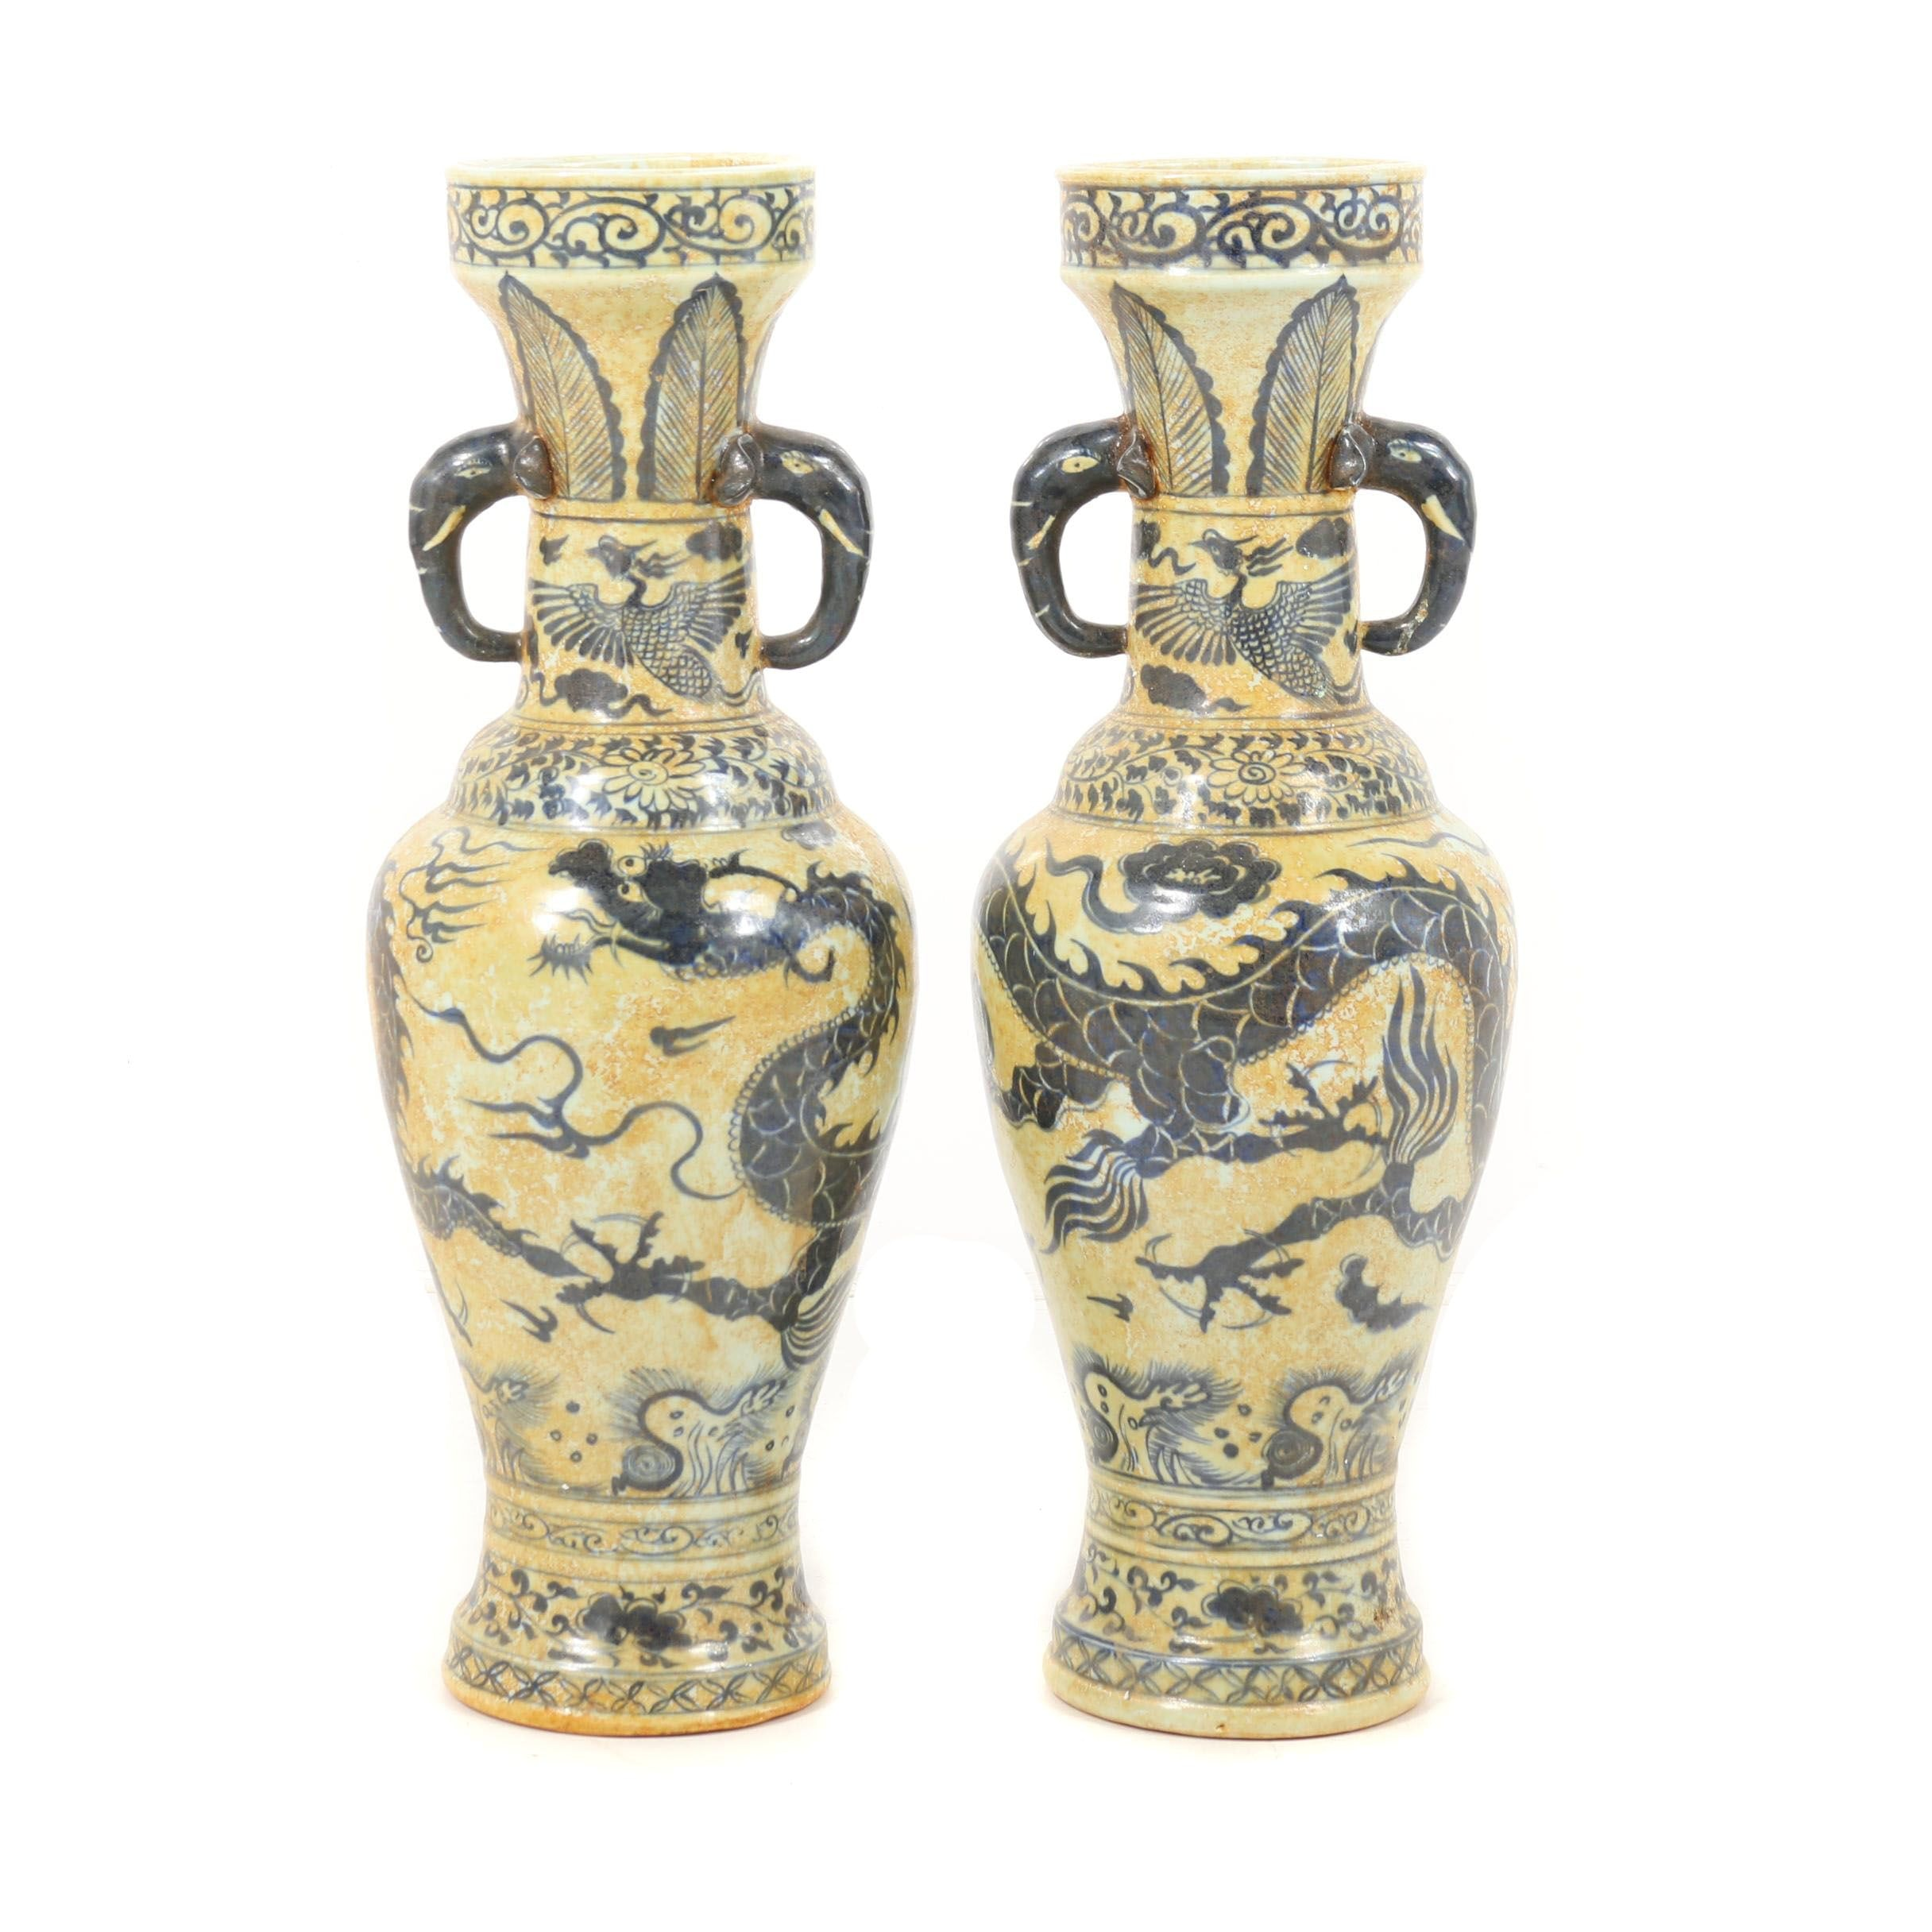 Chinese Blue Dragon Motif Ceramic Vases with Elephant Trunk Handles